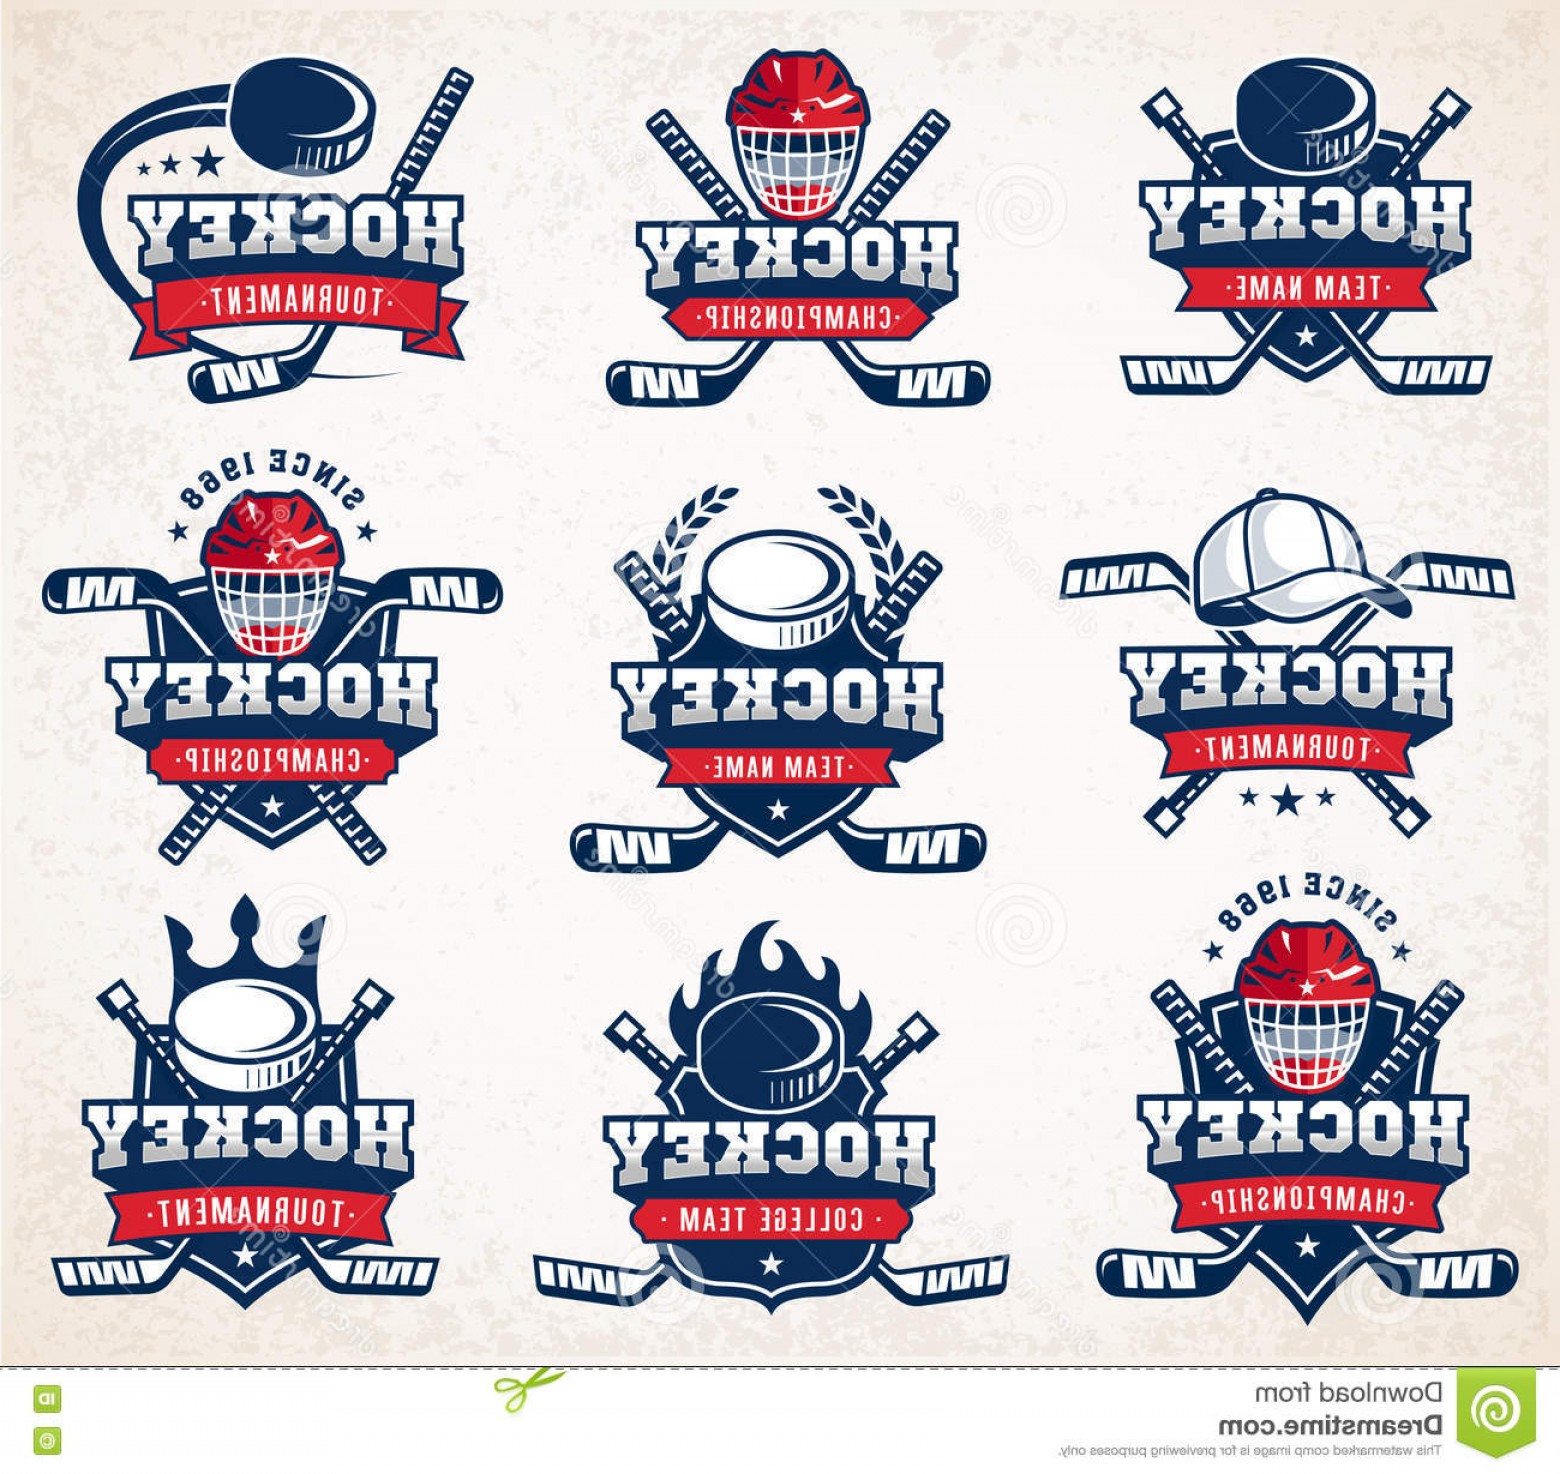 Hockey Teams Logo Vectors: Stock Illustration Vector Hockey Logo Set Collection Nine Colorful Insignias Organized Layers Image